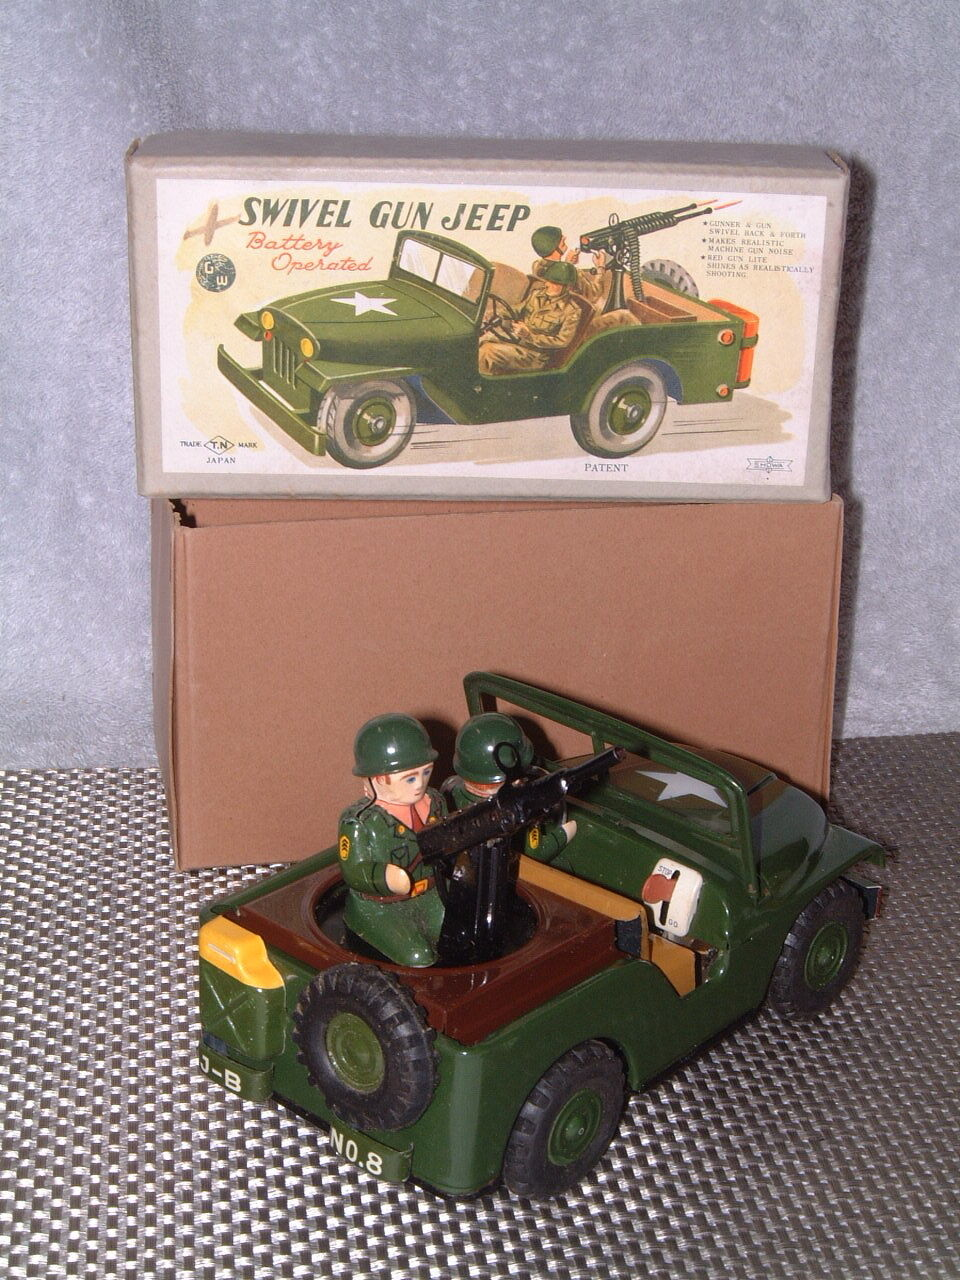 VINTAGE NOMURA SWIVEL GUN JEEP BATTERY OPERATED, FULLY WORKING W ORIGINAL BOX